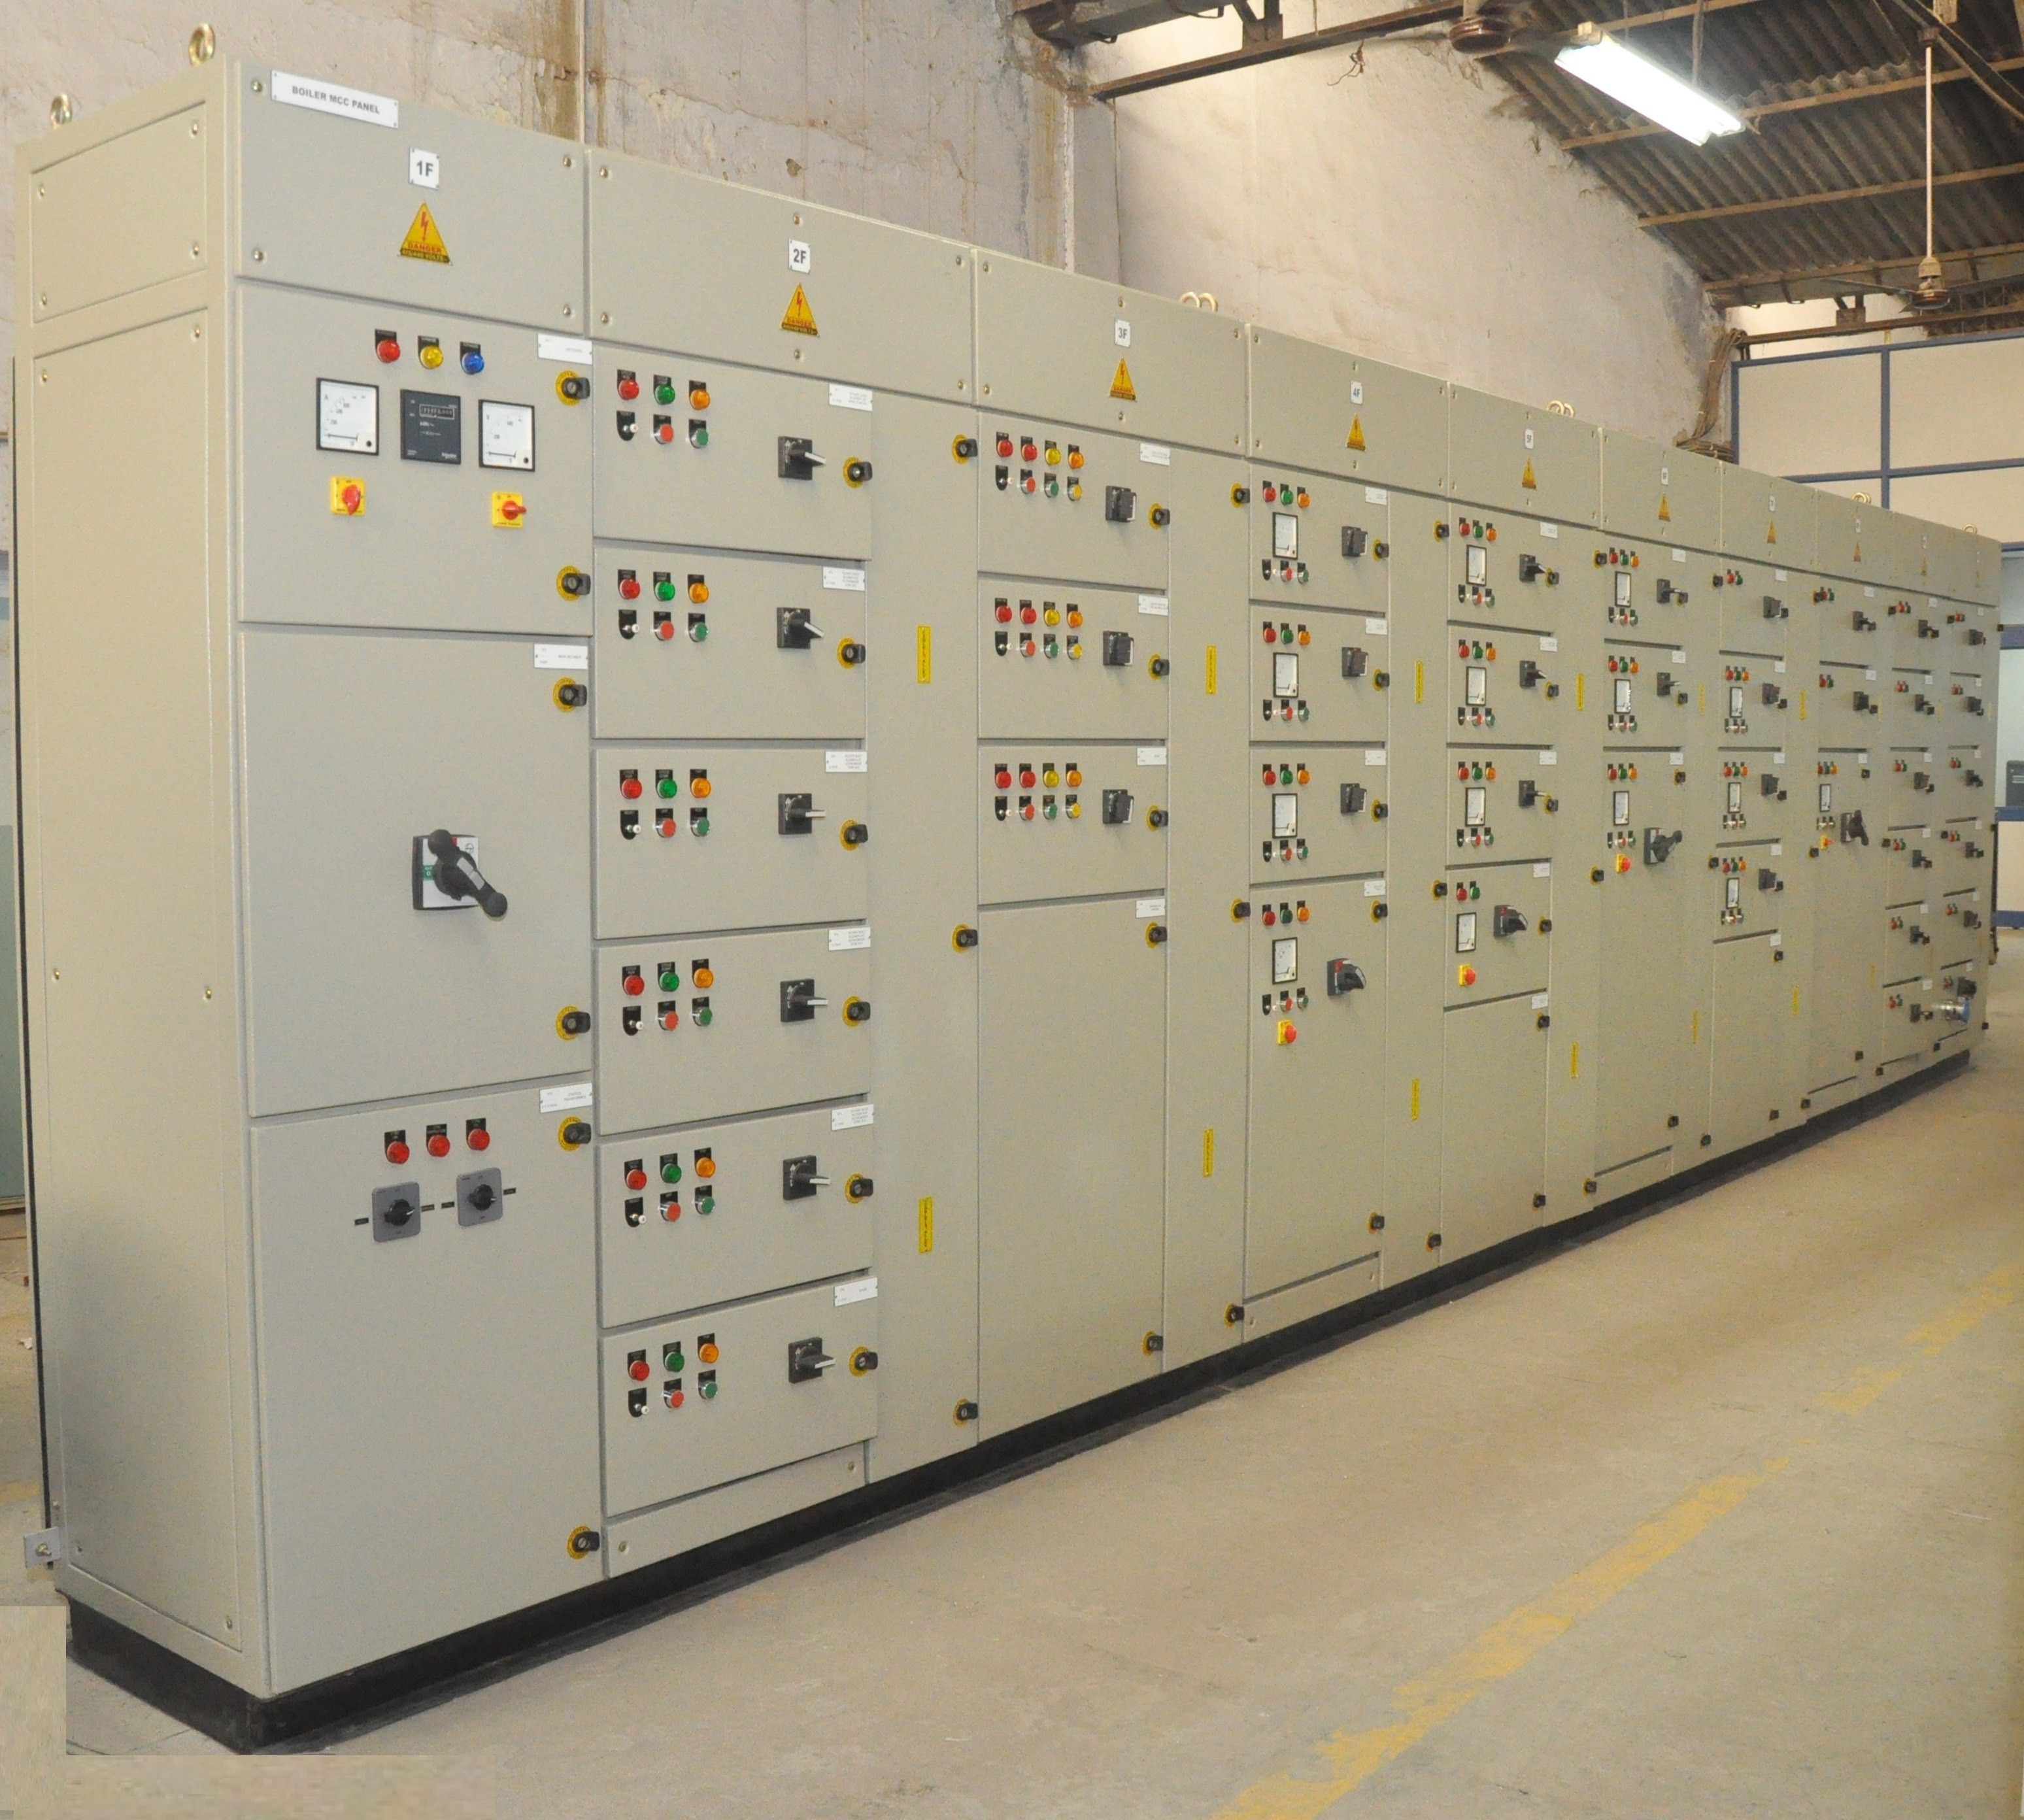 Mcc Panel Shivalic Is Prominent In Manufacturing And